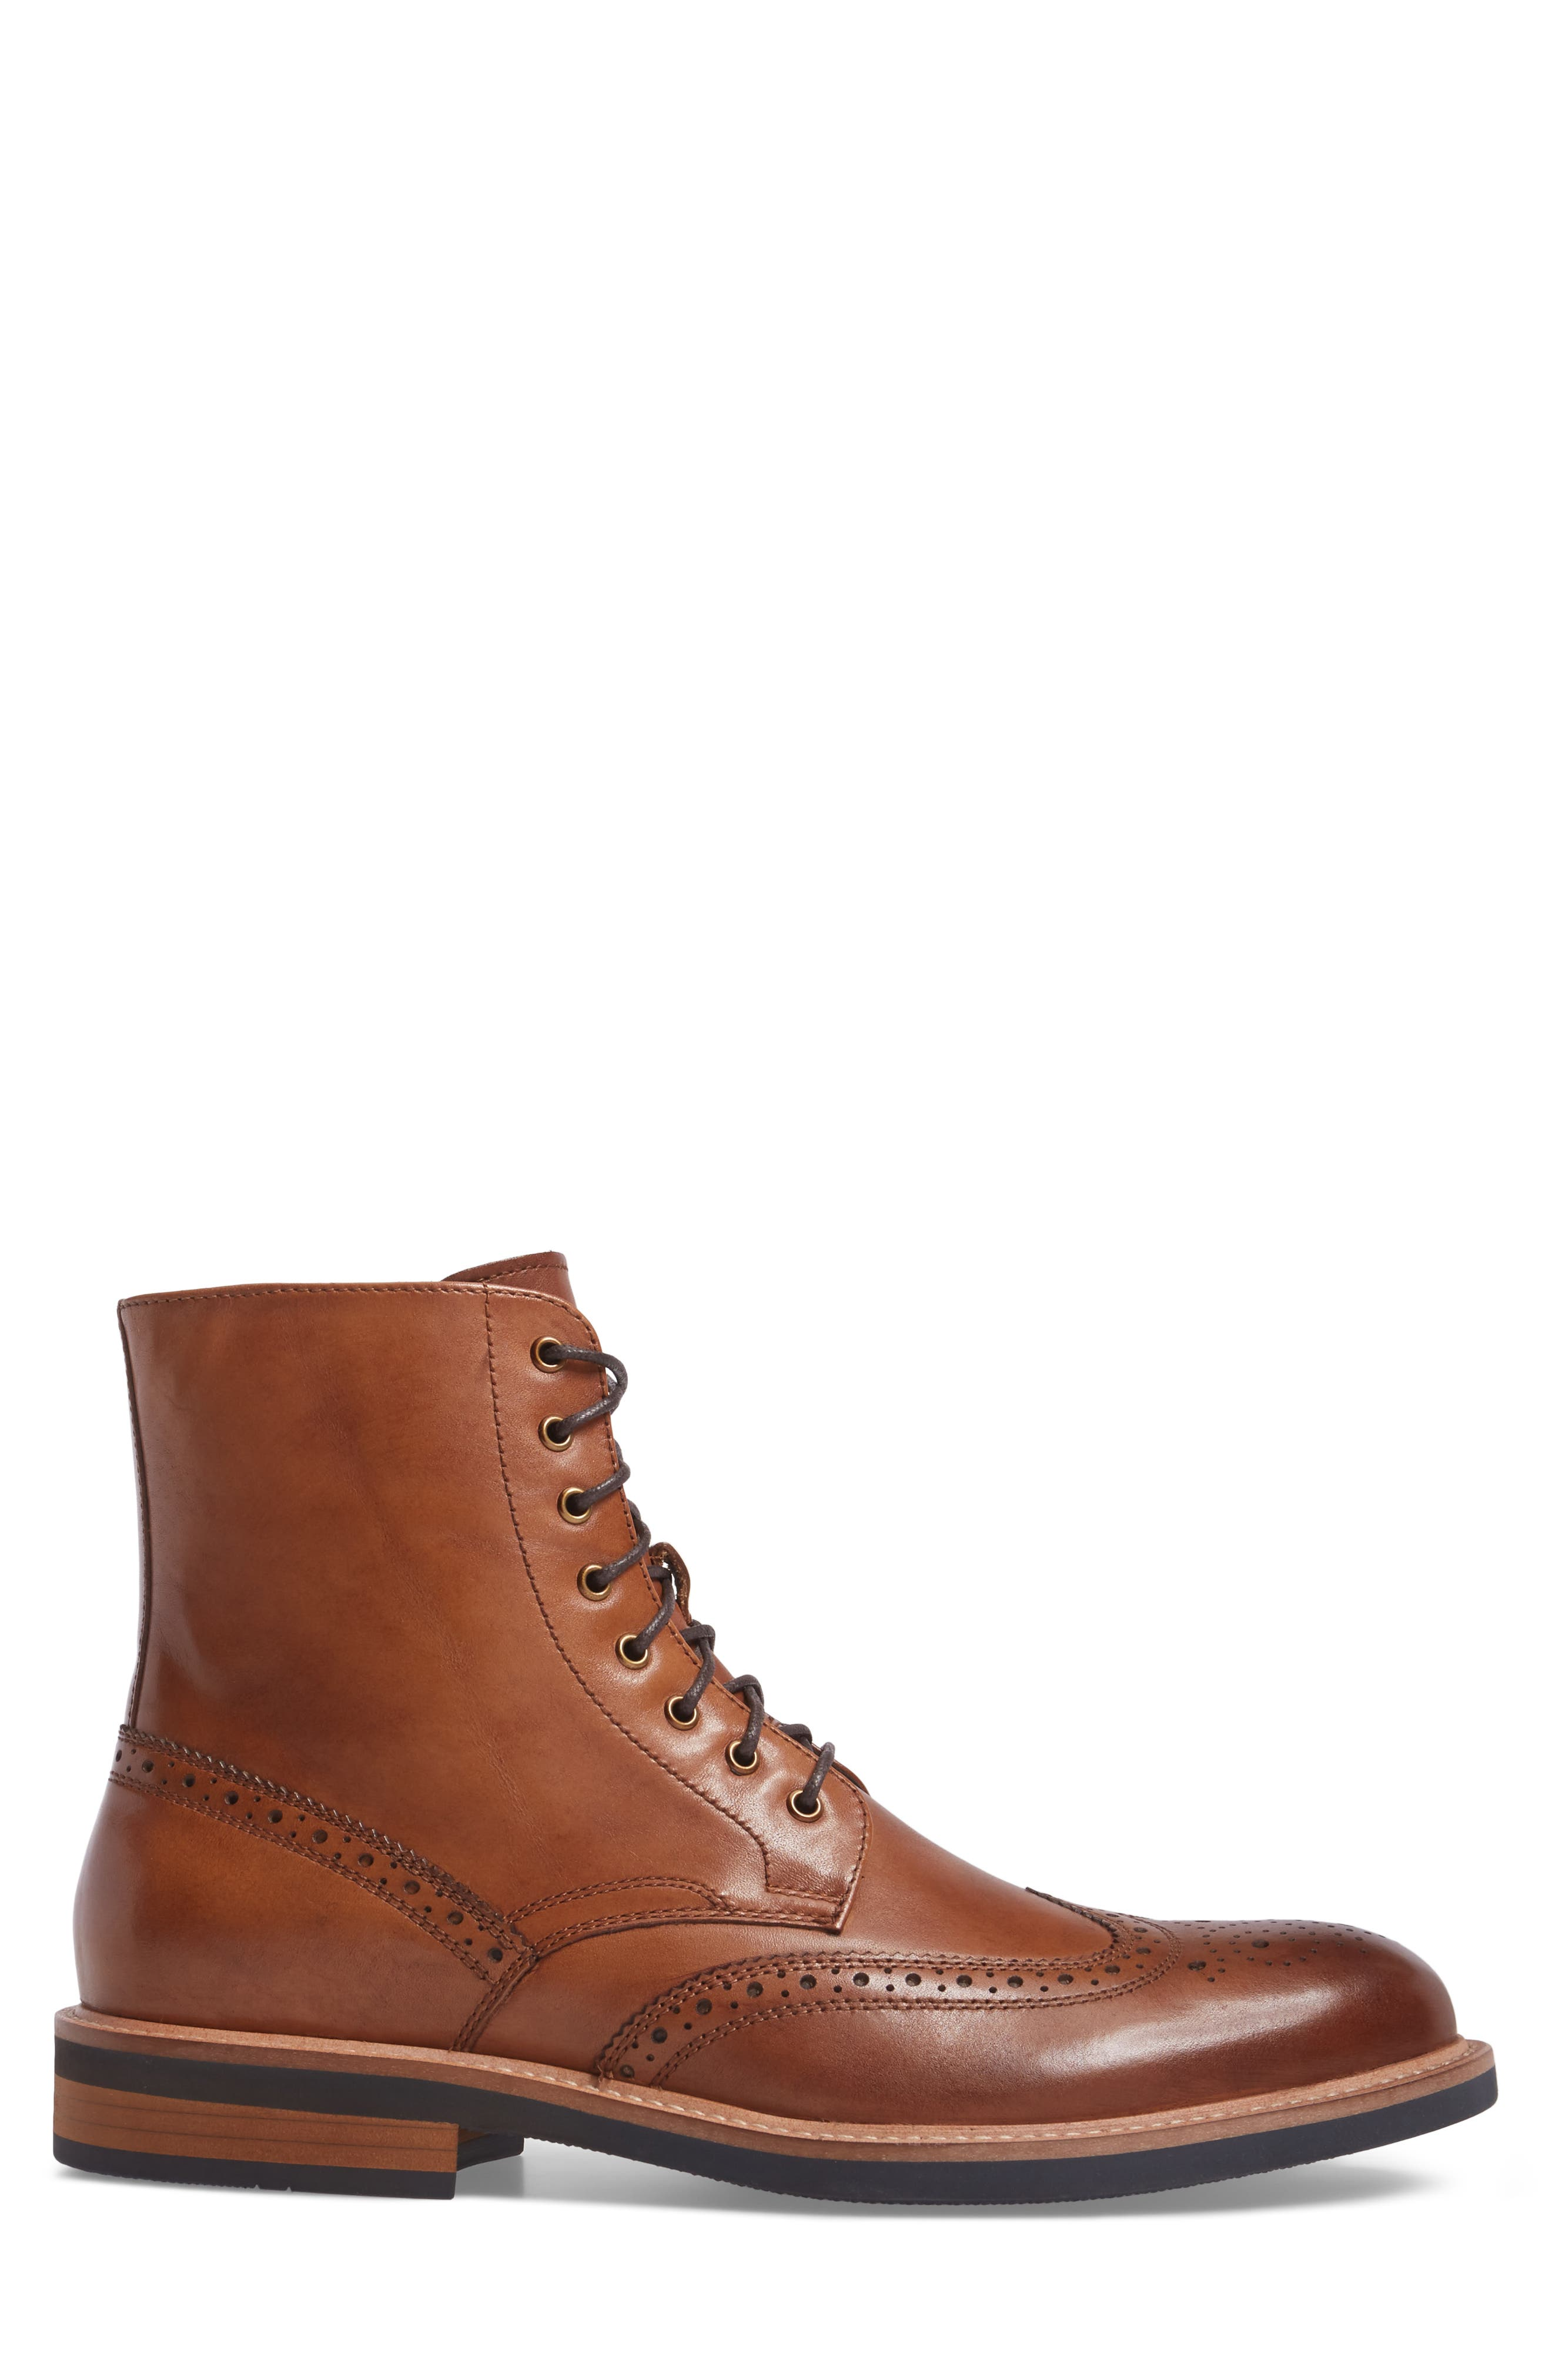 Kenneth Cole Reaction Wingtip Boot,                             Alternate thumbnail 3, color,